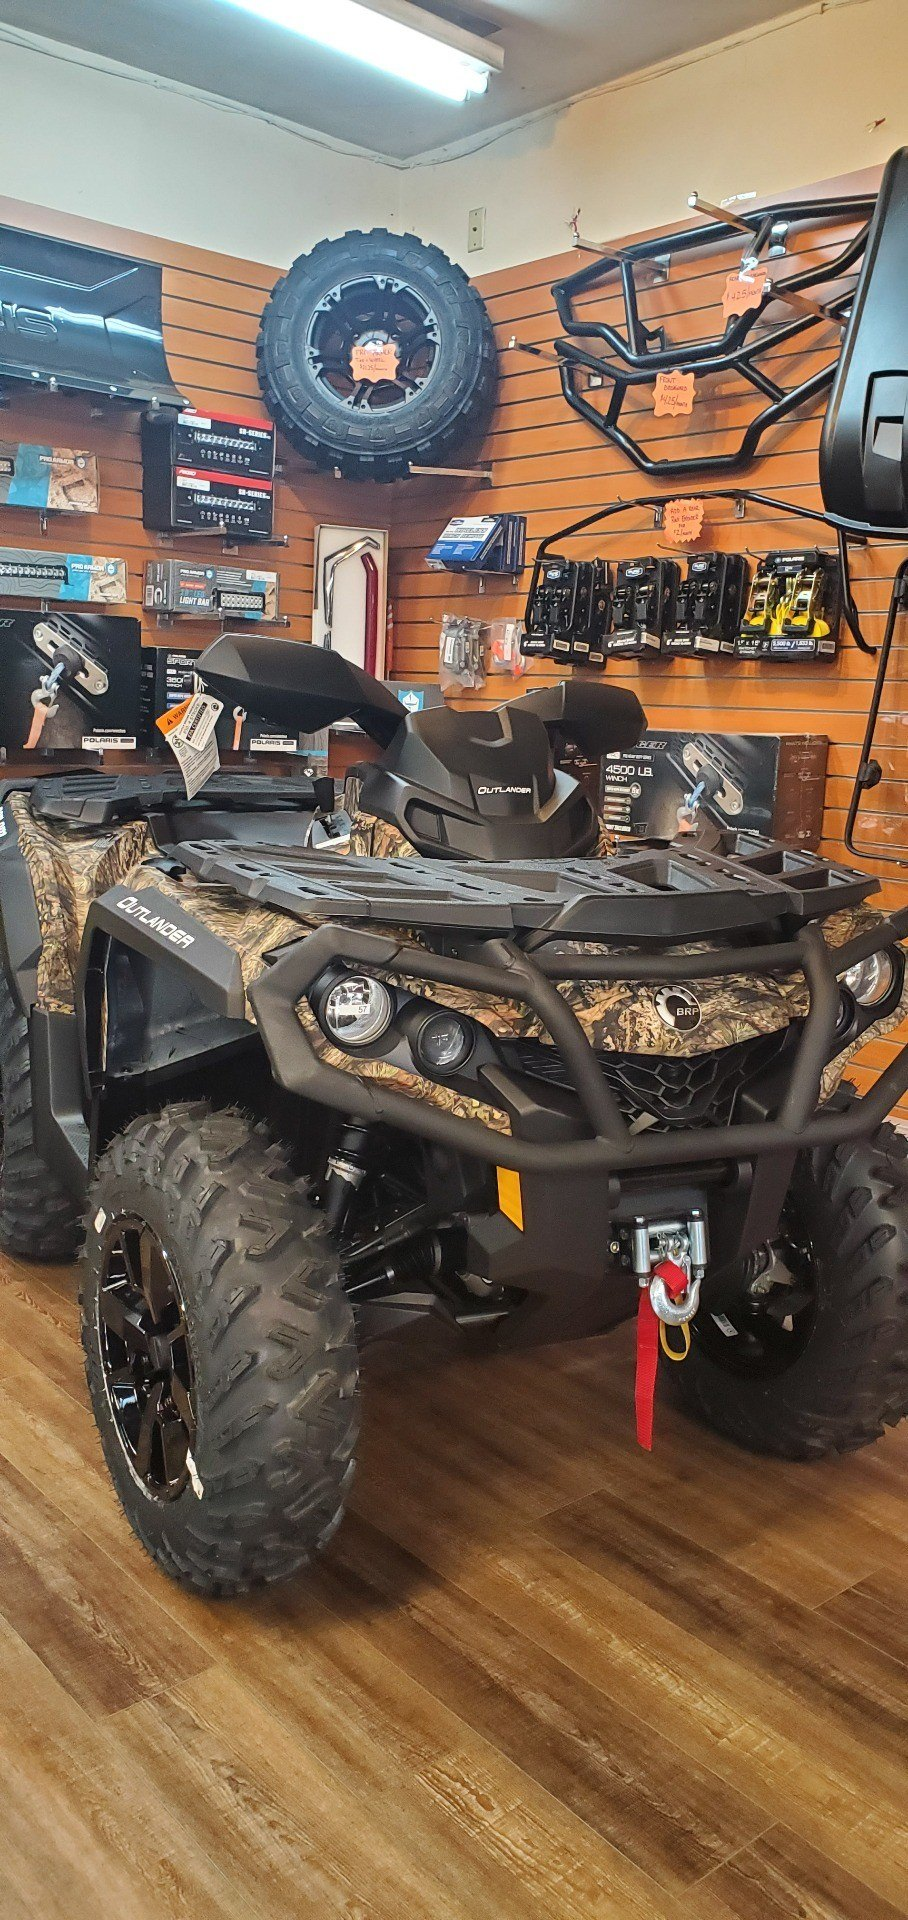 2020 Can-Am Outlander XT 850 in Ledgewood, New Jersey - Photo 3